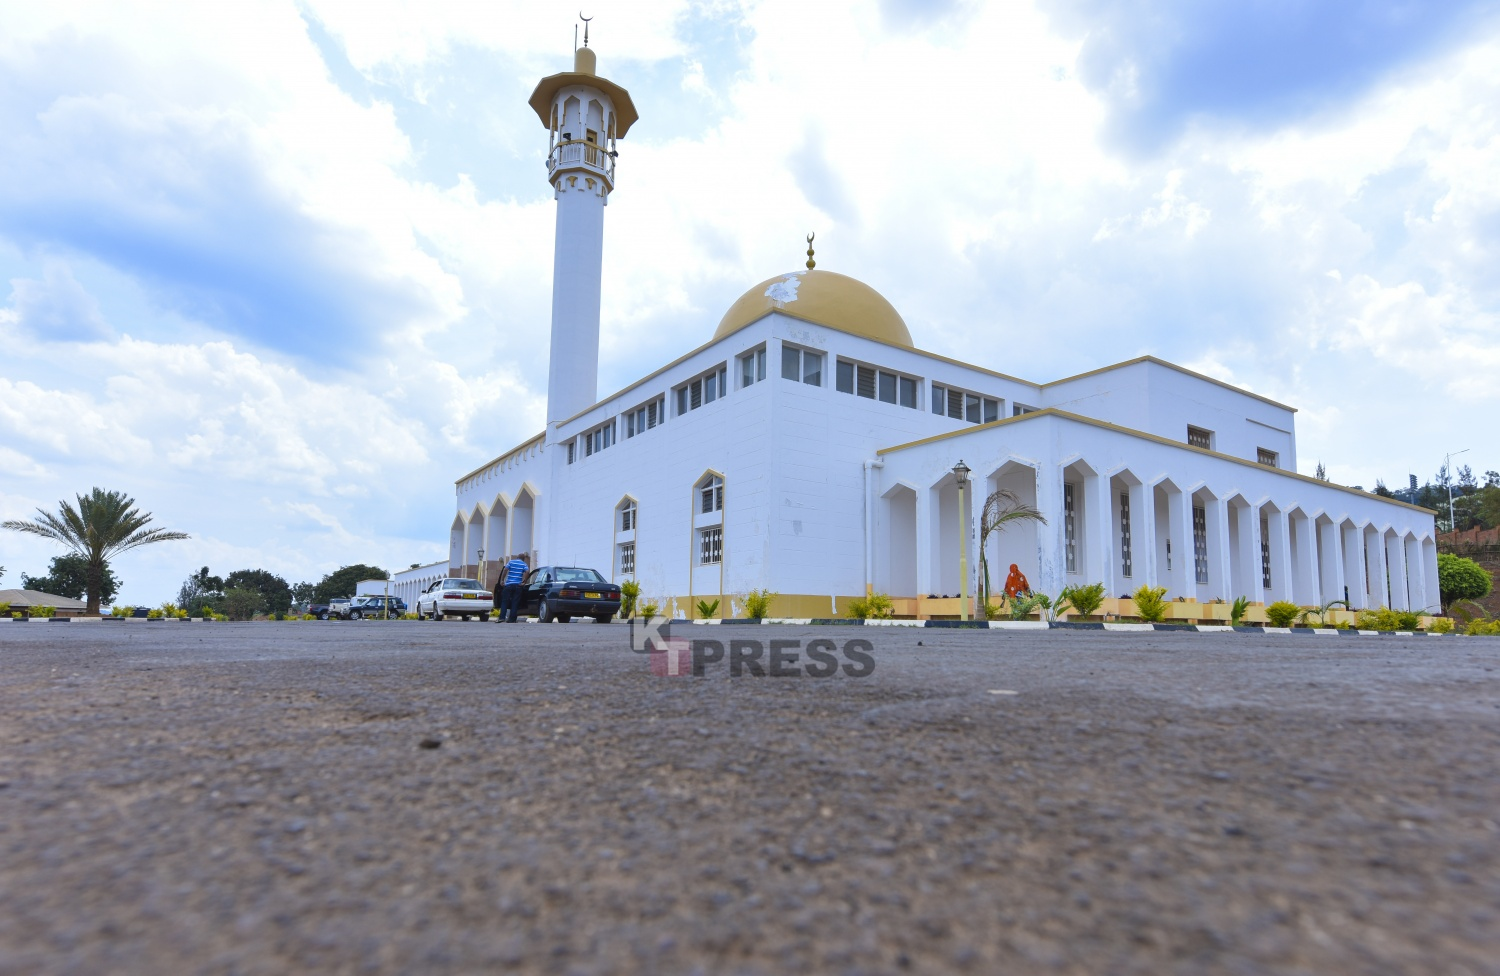 10 Most Eye Catching Churches Of Kigali Kt Press